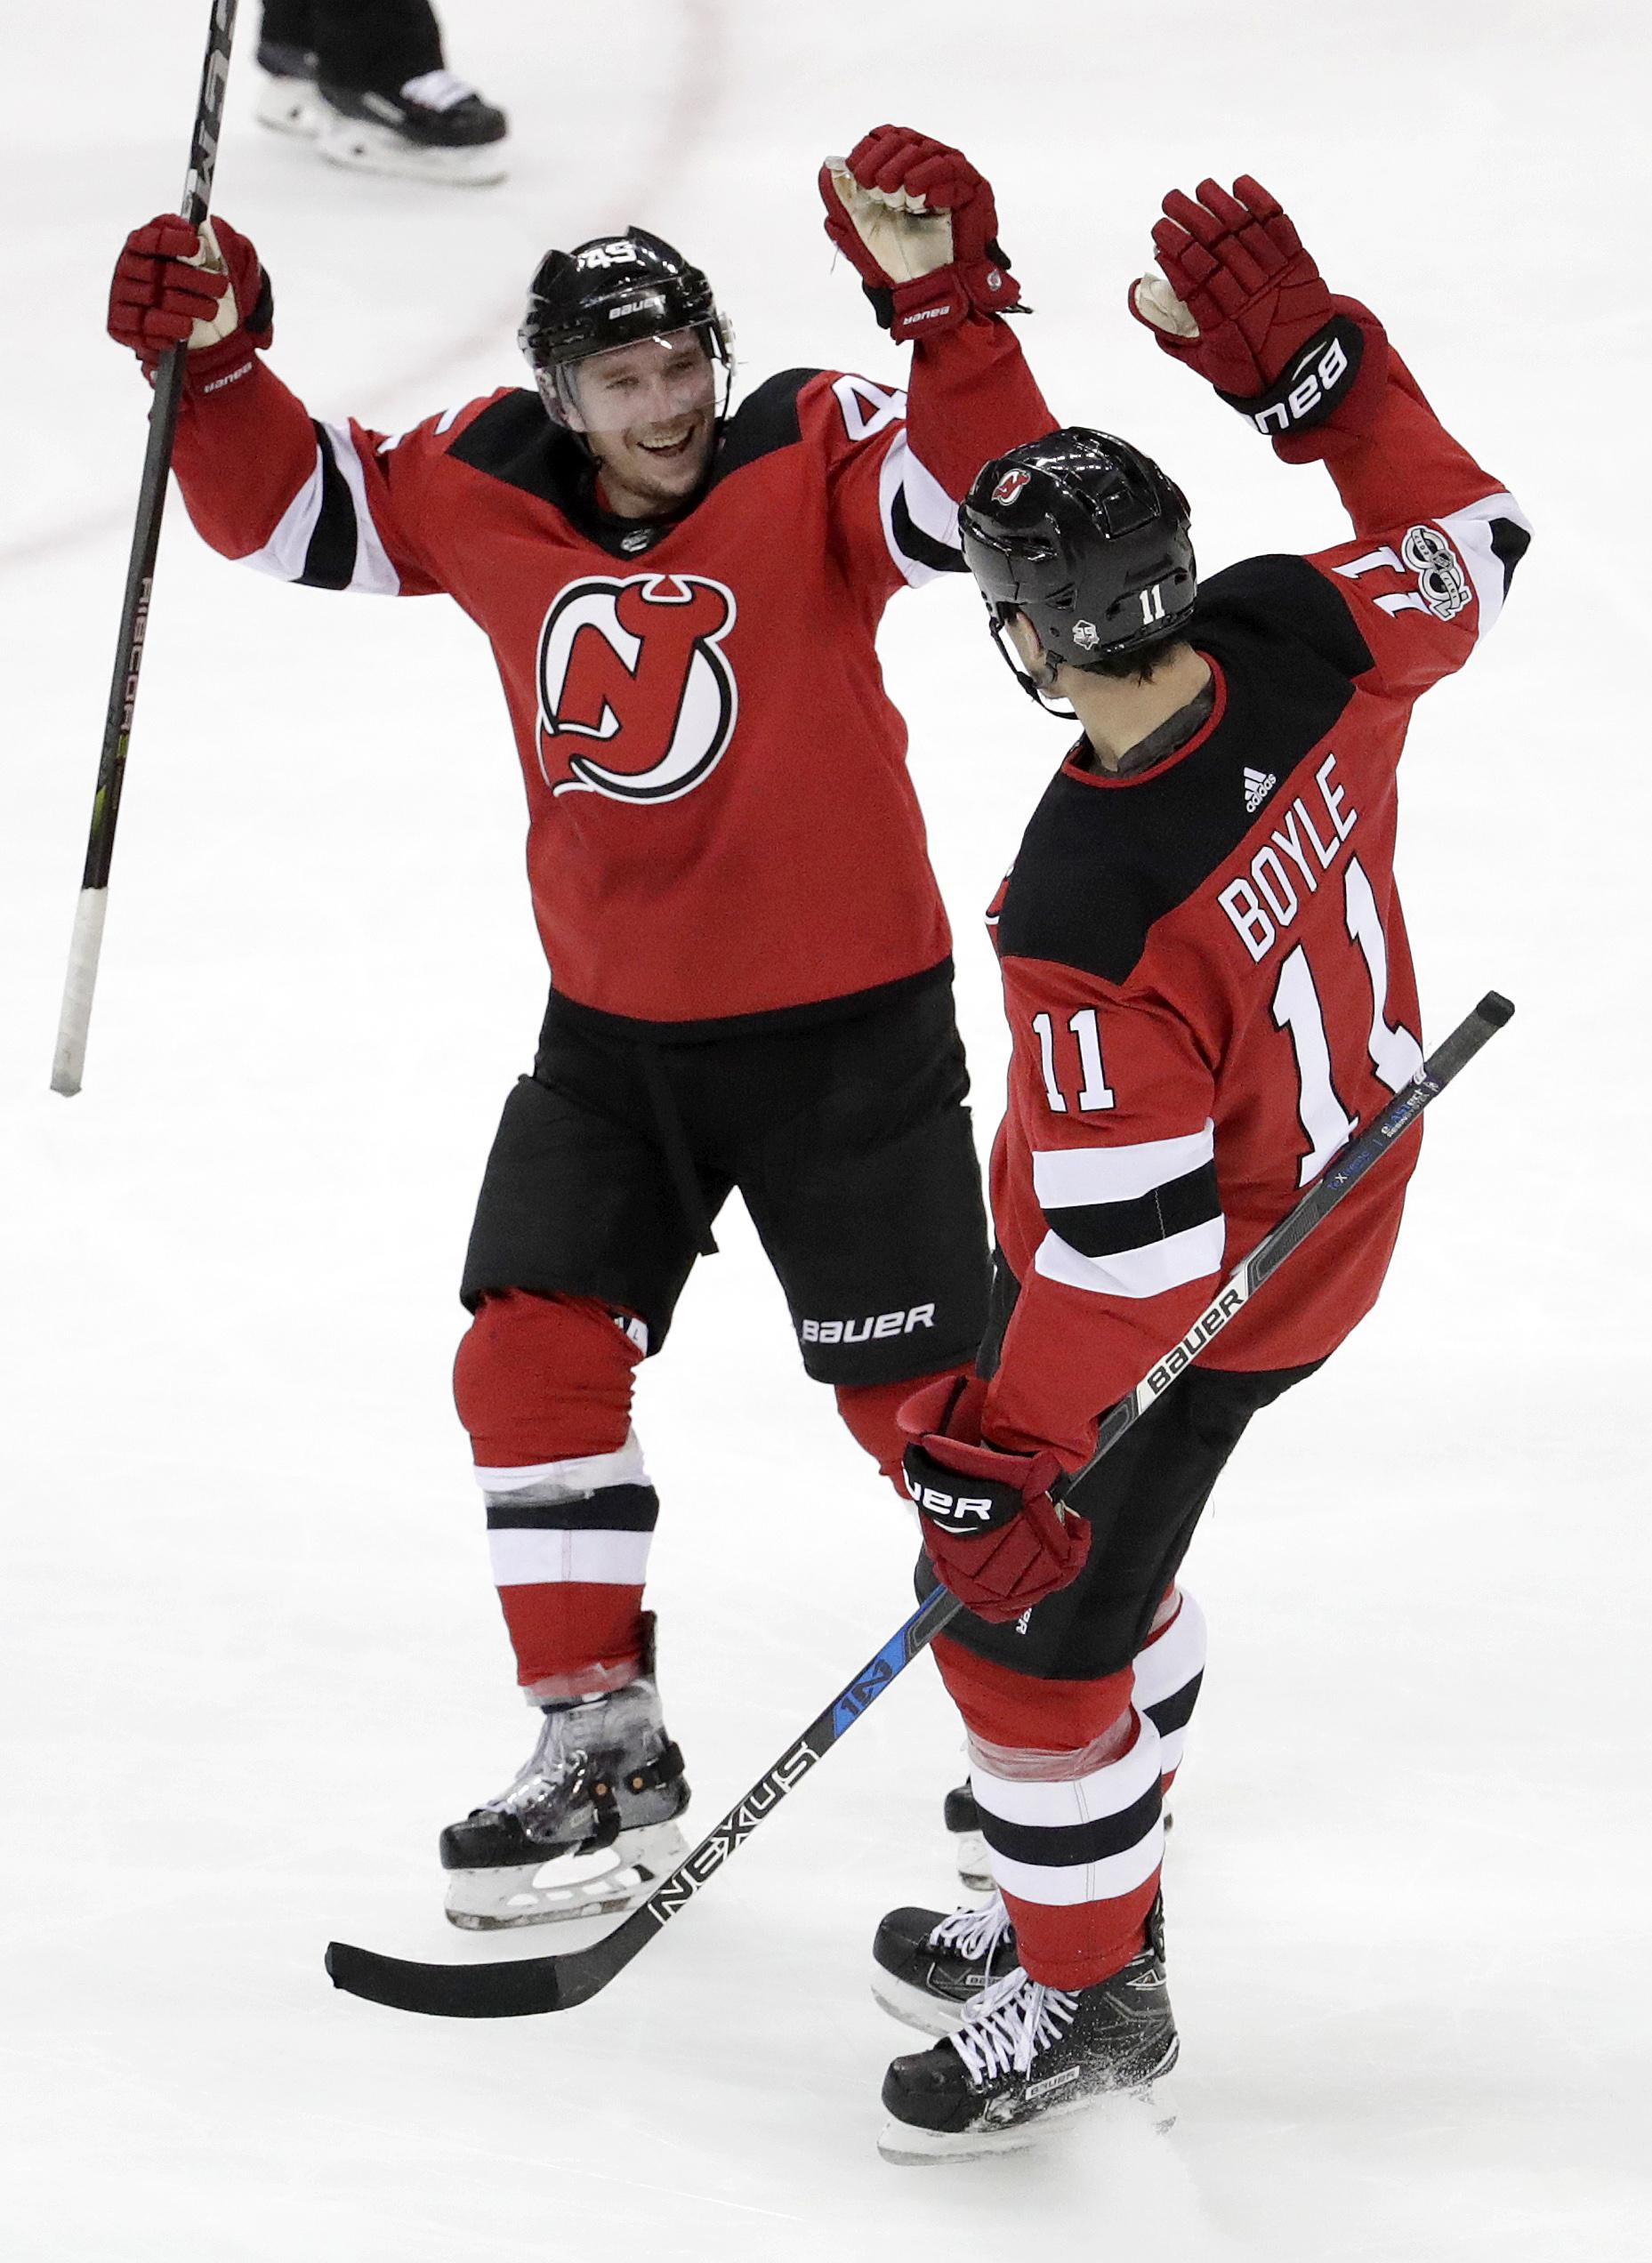 Brian Boyle scores twice to help Devils beat Stars 5-2. - Washington Times df9ef1b5a